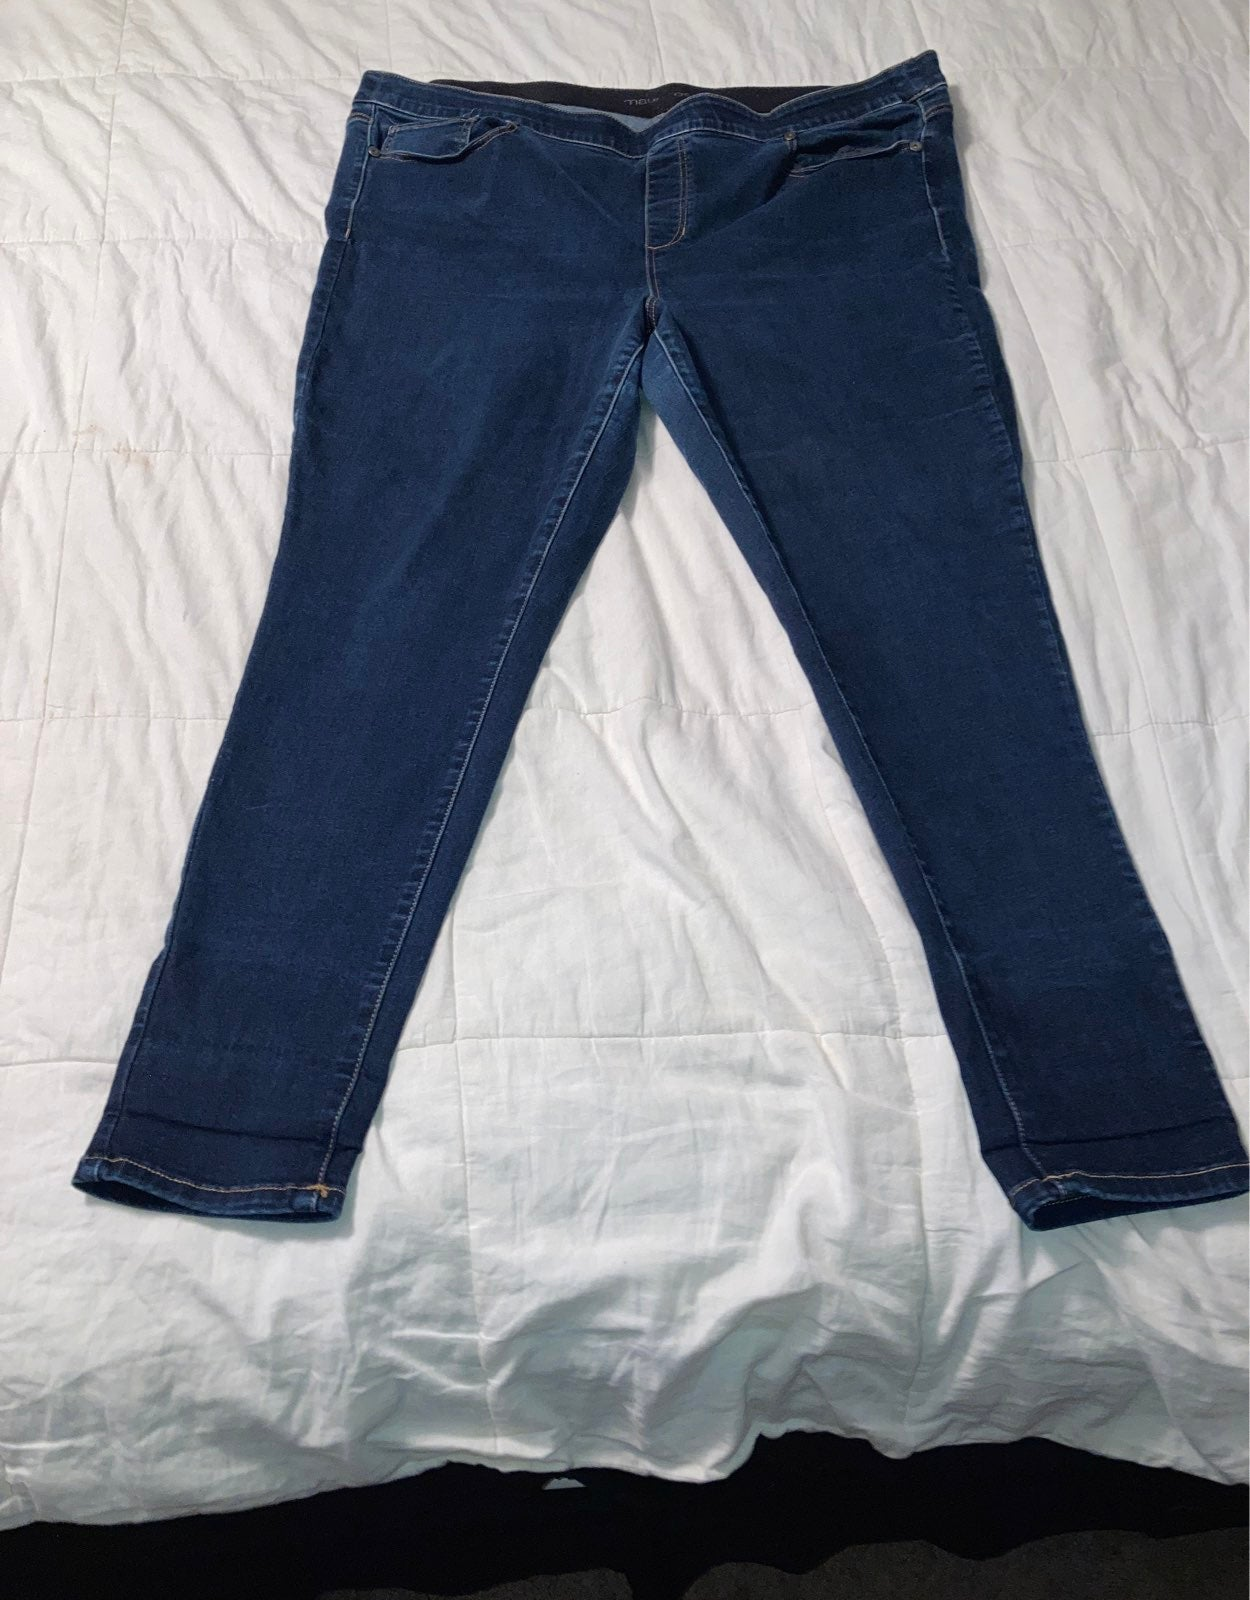 Maurices skinny jeans women's plus 24